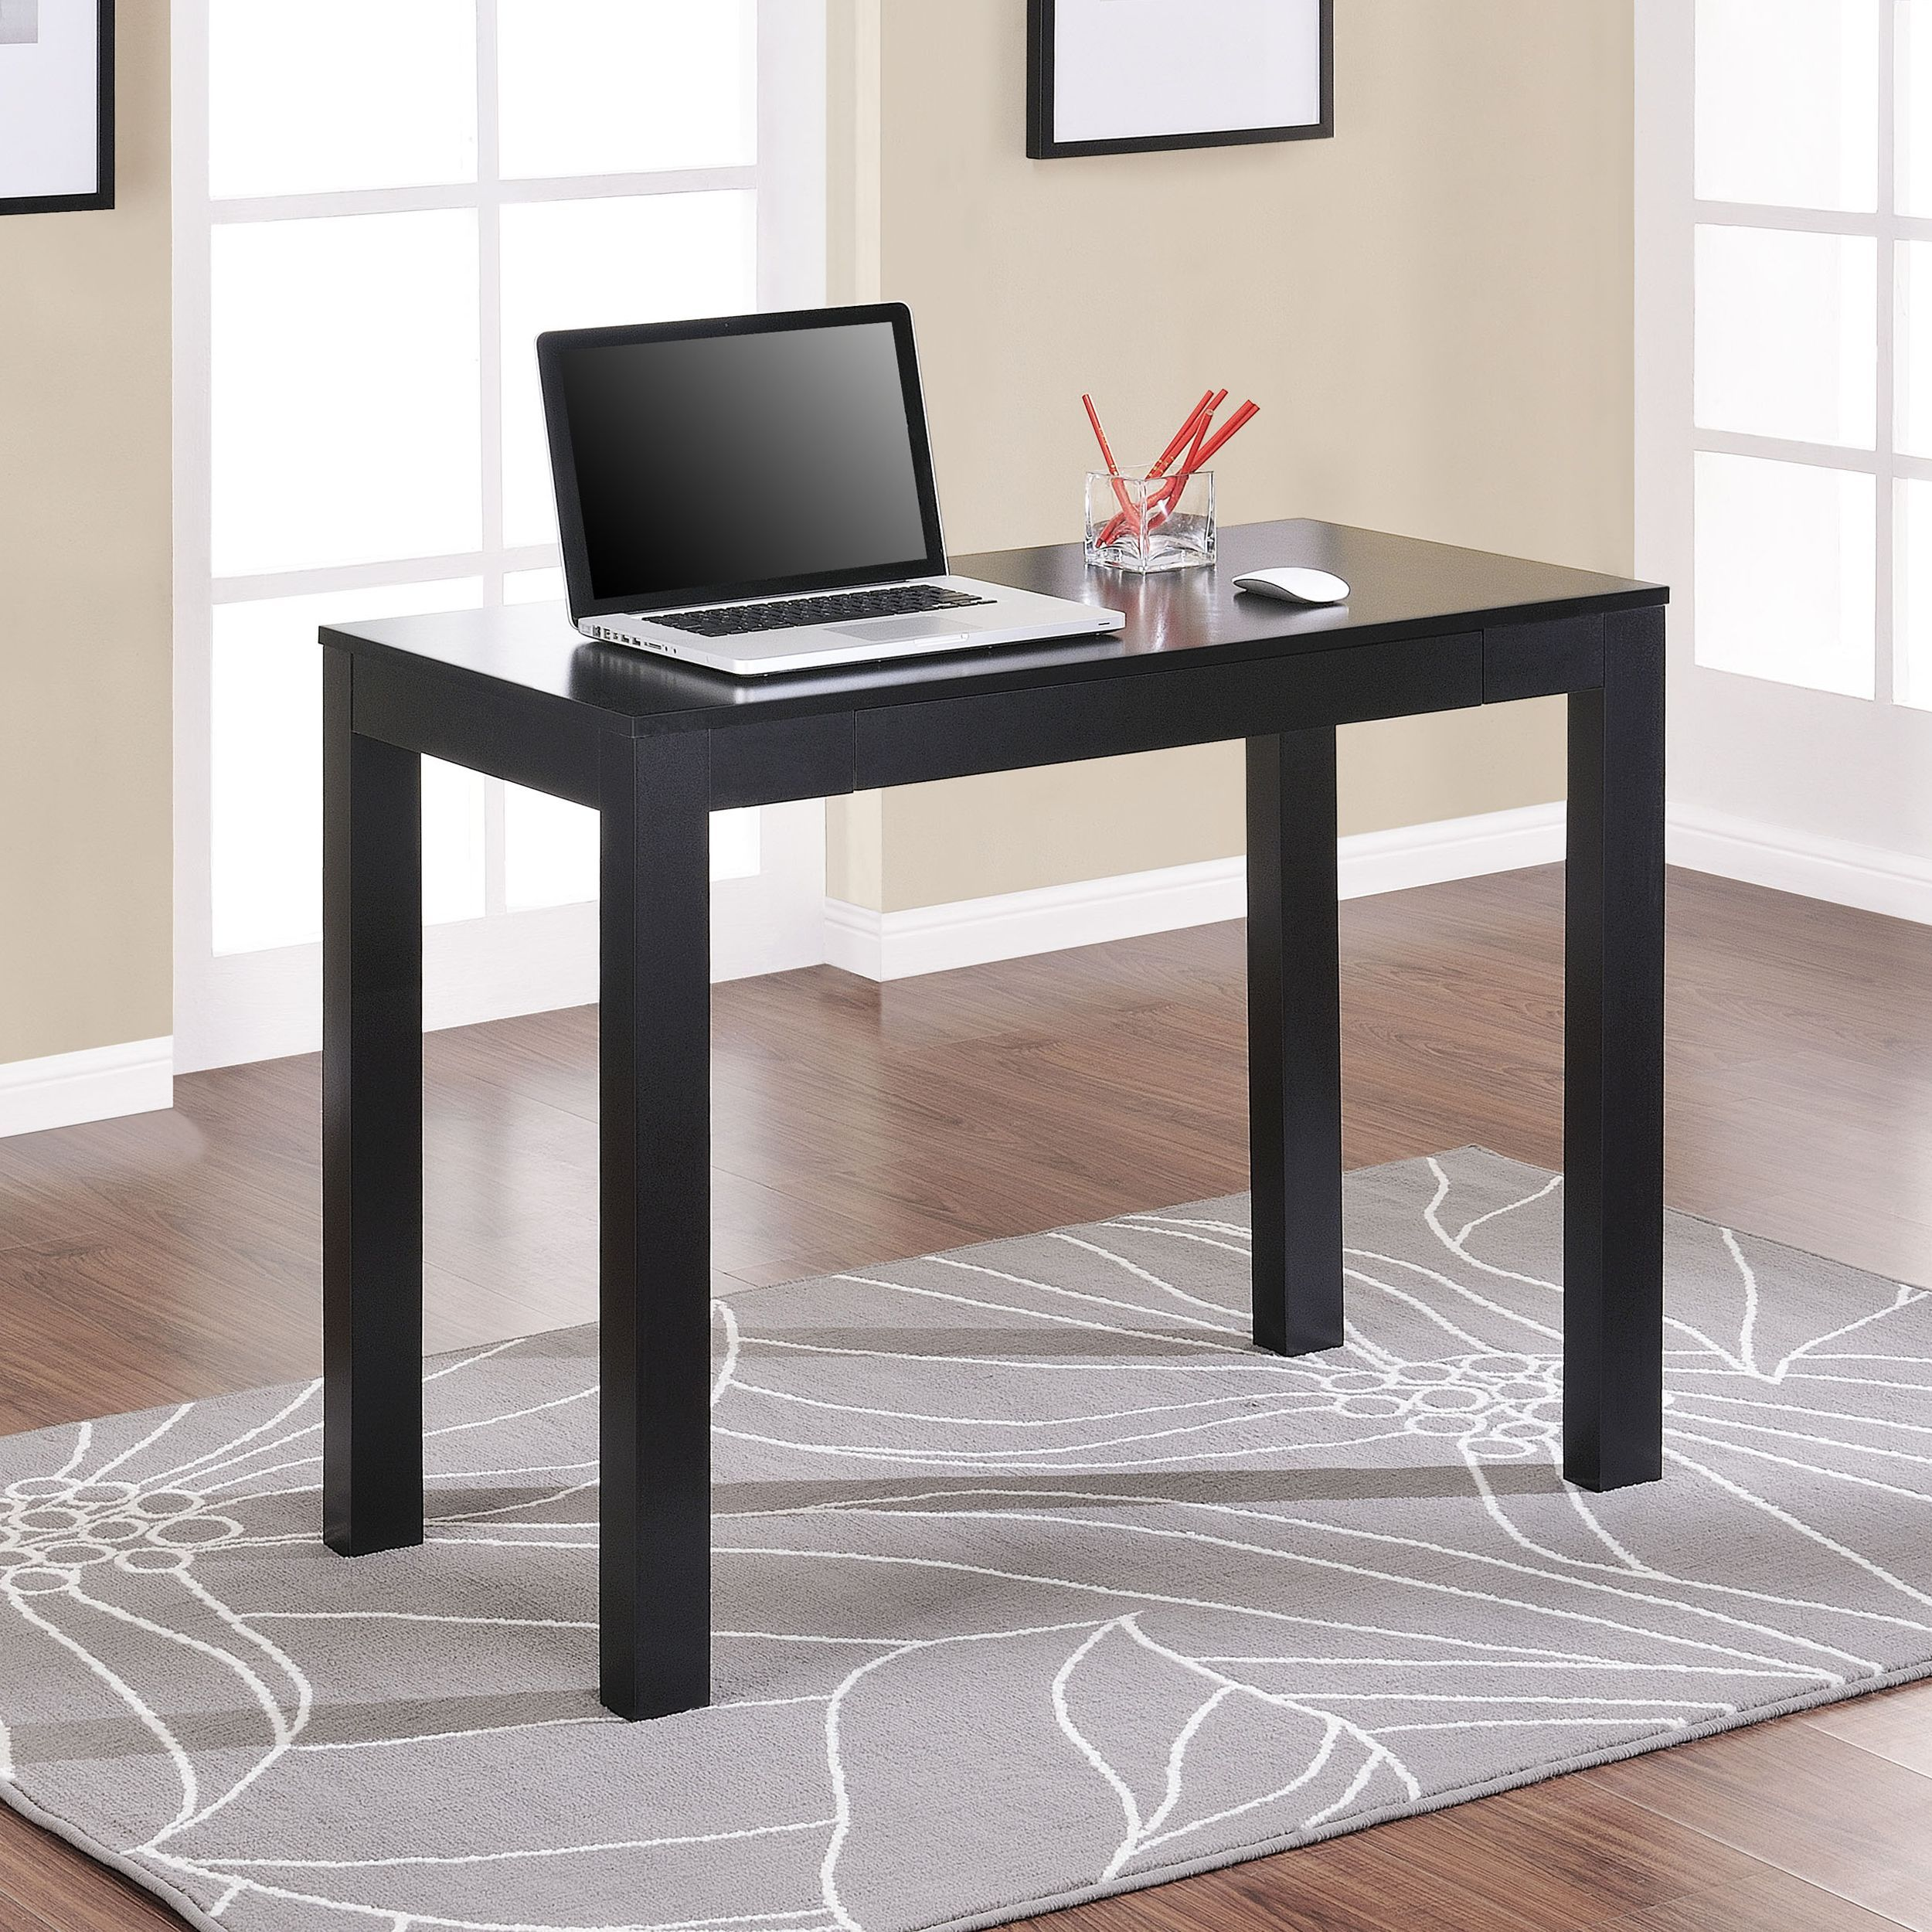 work from home in comfort with this space saving black writing desk rh pinterest com